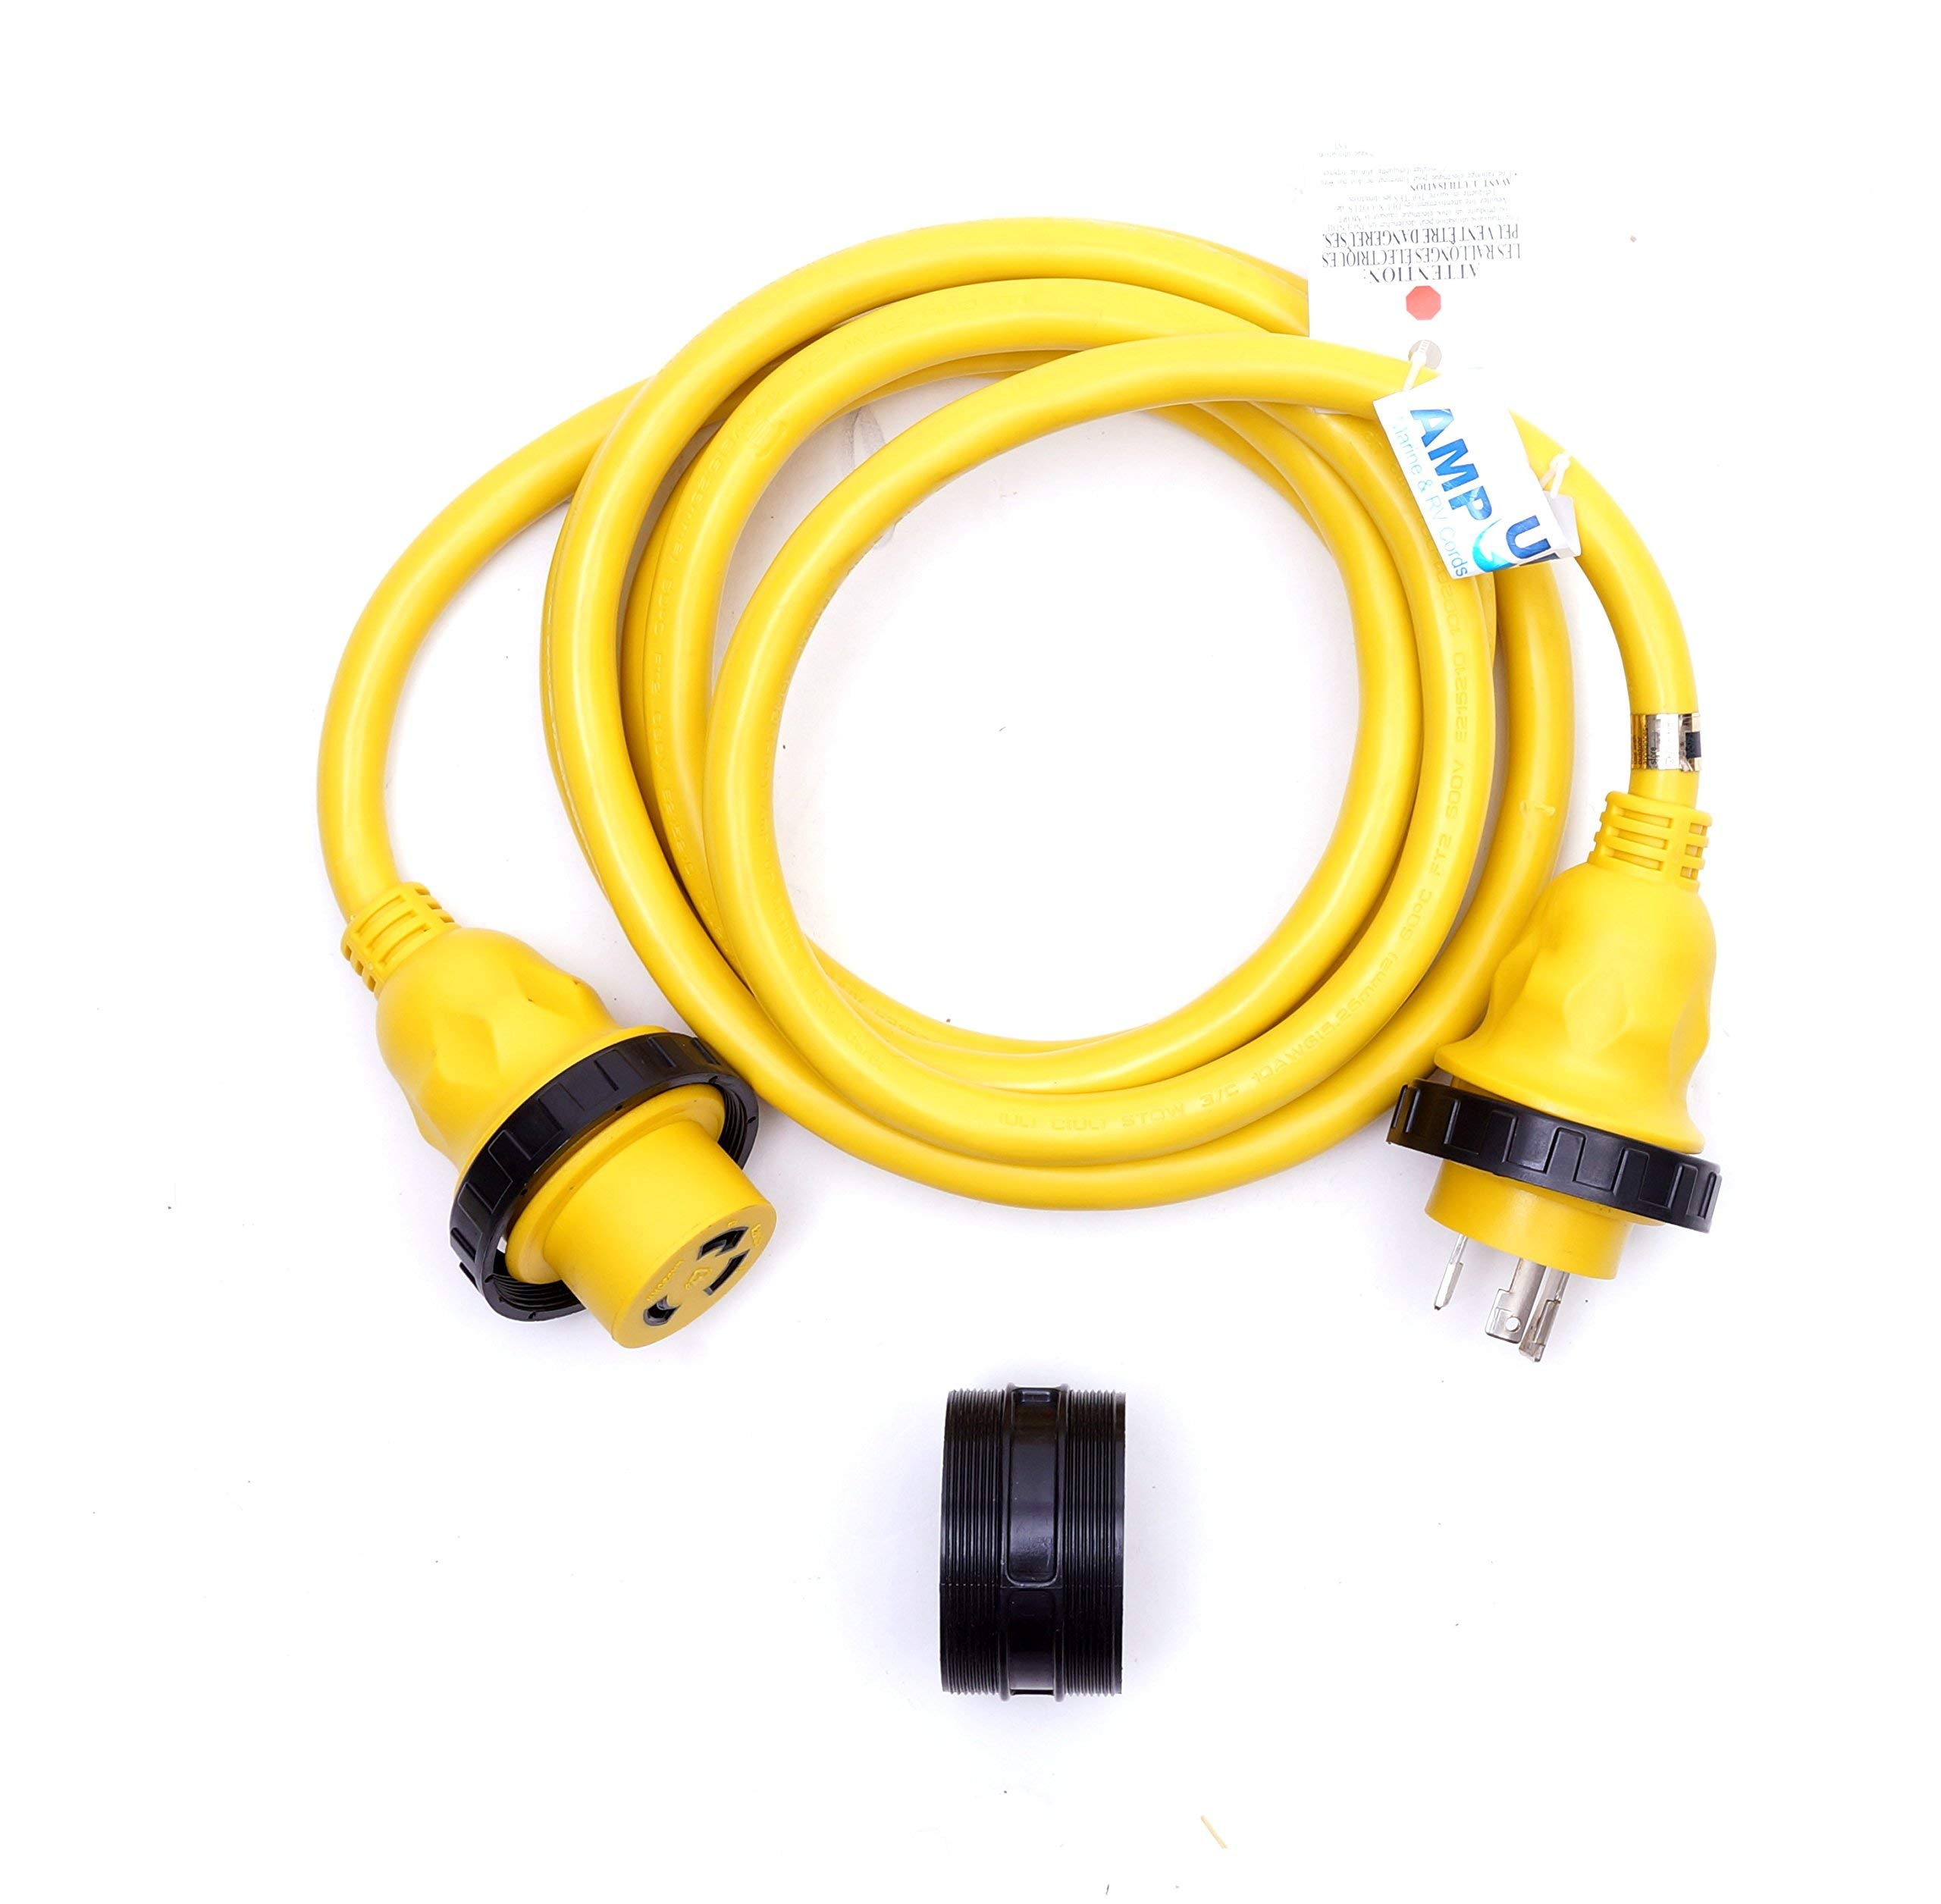 Amp Up Marine & RV Cords 125v 30 amp x 12' Marine Shore Power Boat Extension Cord, 12 ft by Amp Up